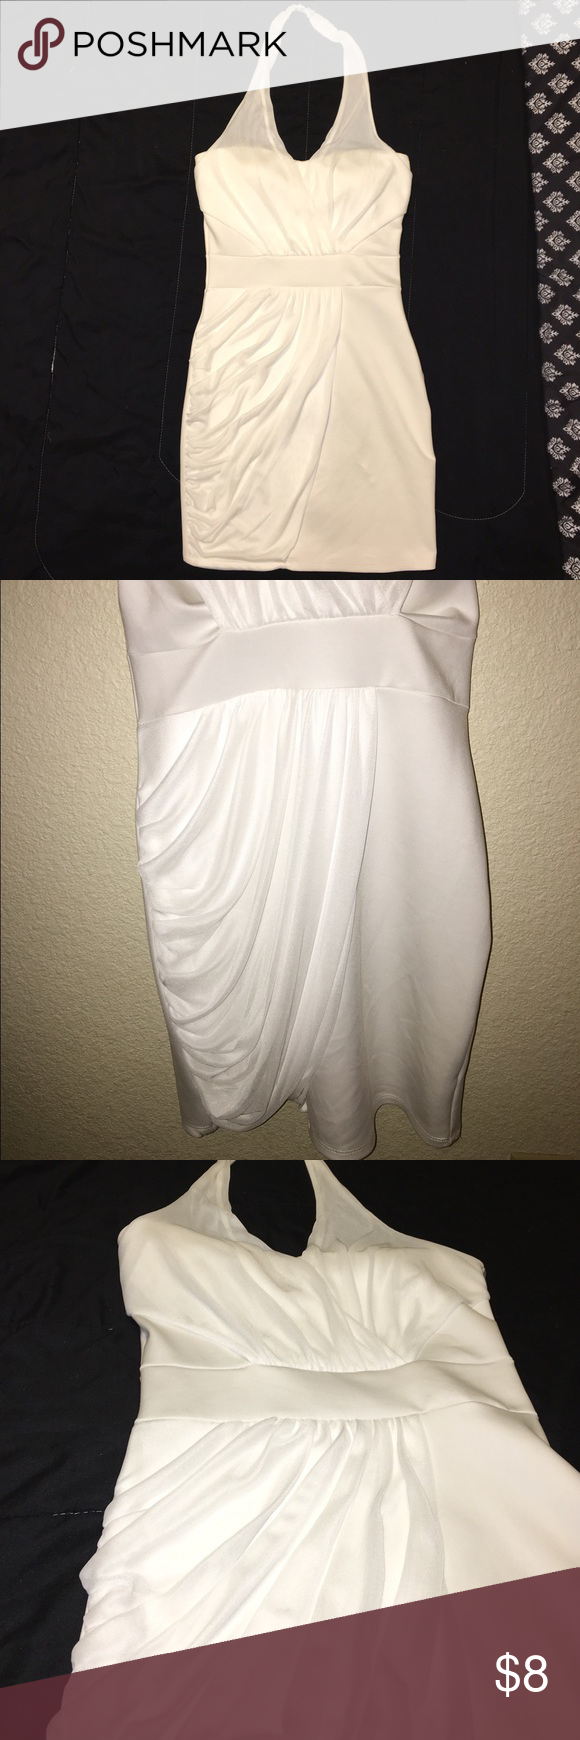 White halter top dress White halter top mini dress. Form fitting dress, sweetheart neckline, halter top straps and mesh draping. Fabric 100% polyester. ‼️PRICE IS FIRM‼️ dulce carola Dresses Mini